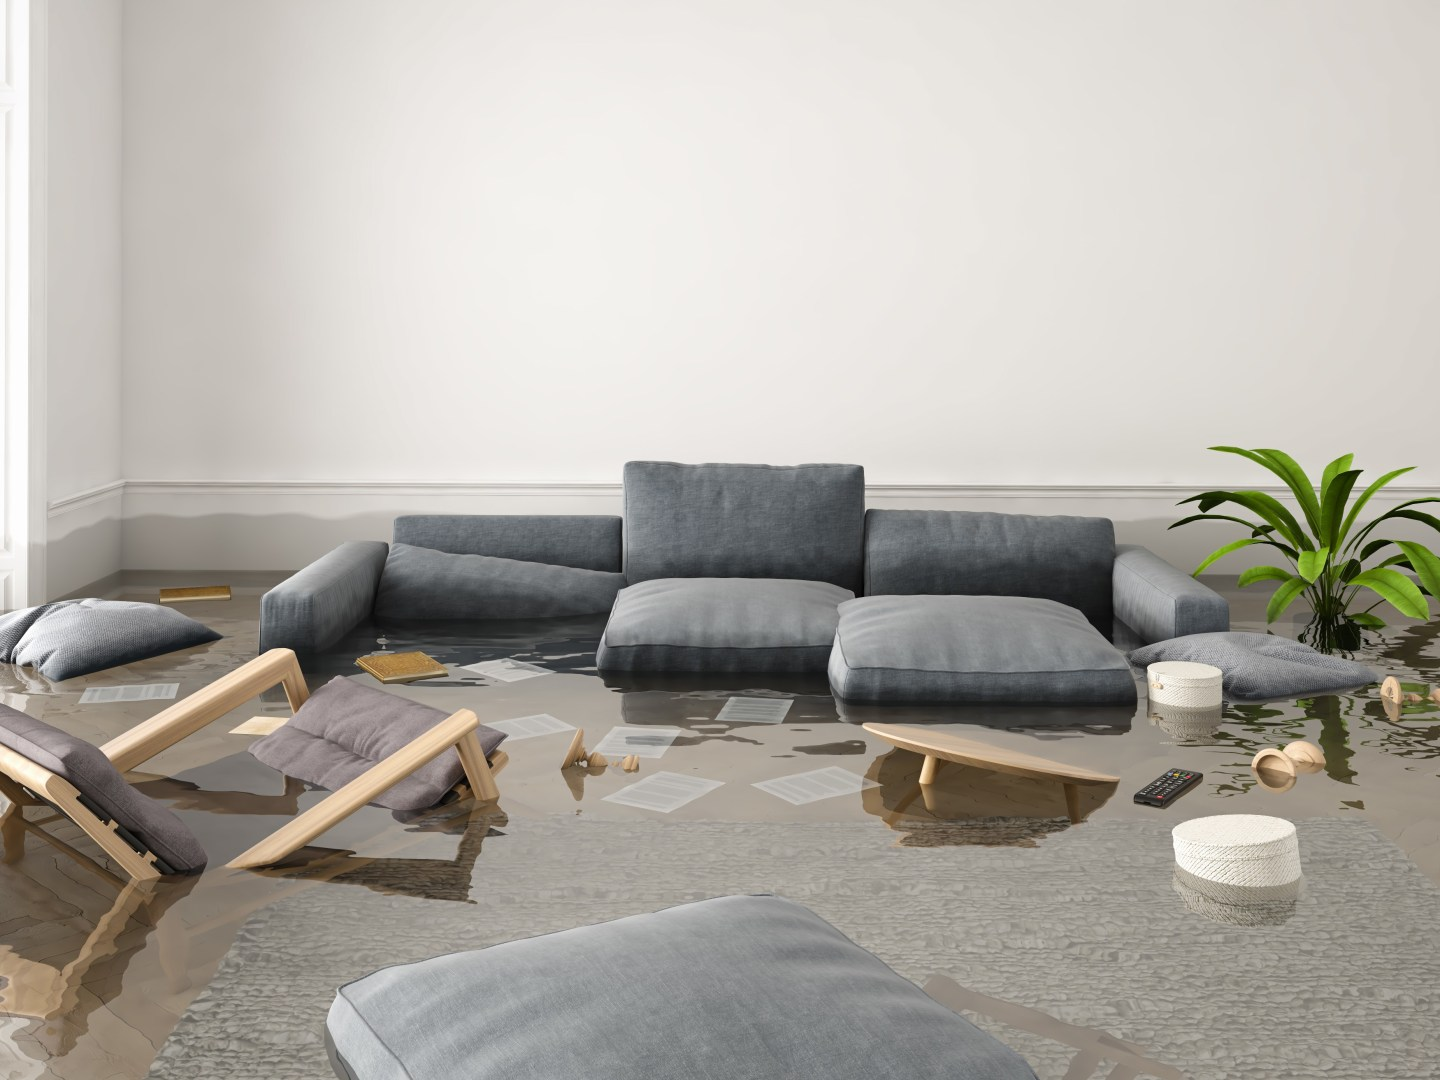 Water Damage Protection with Comprehensive Water from The Co-operators